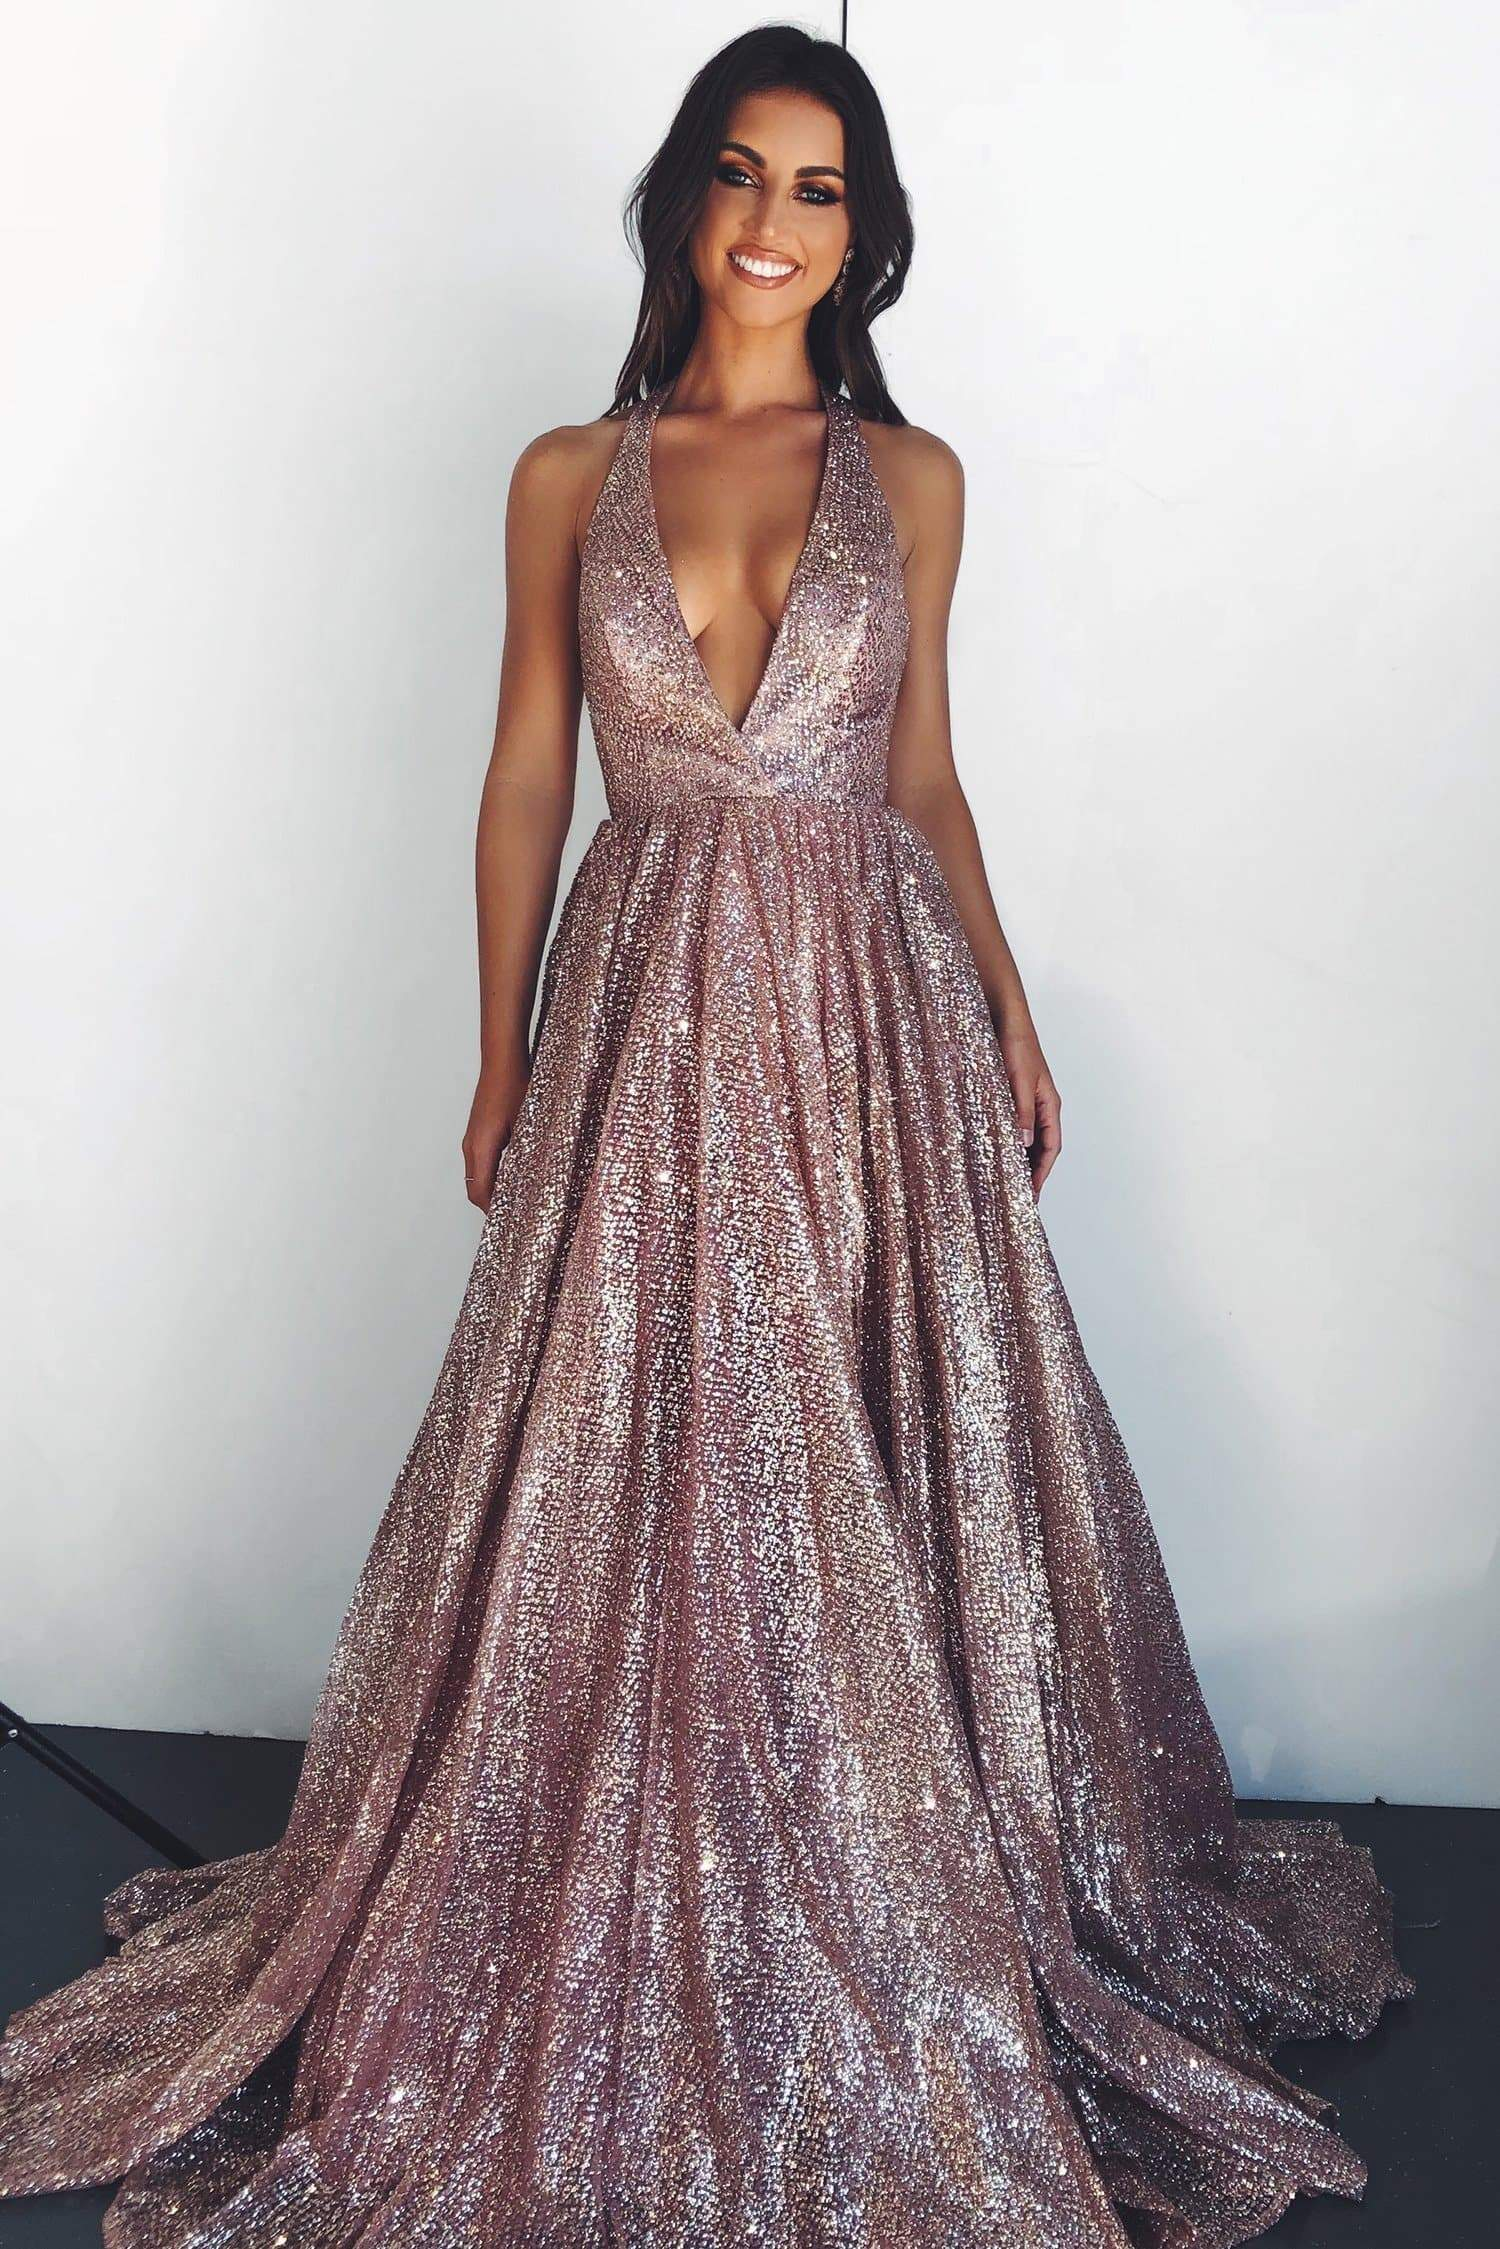 A&N Luxe Saina - Rose Gold Glitter A-Line Gown with Low Back